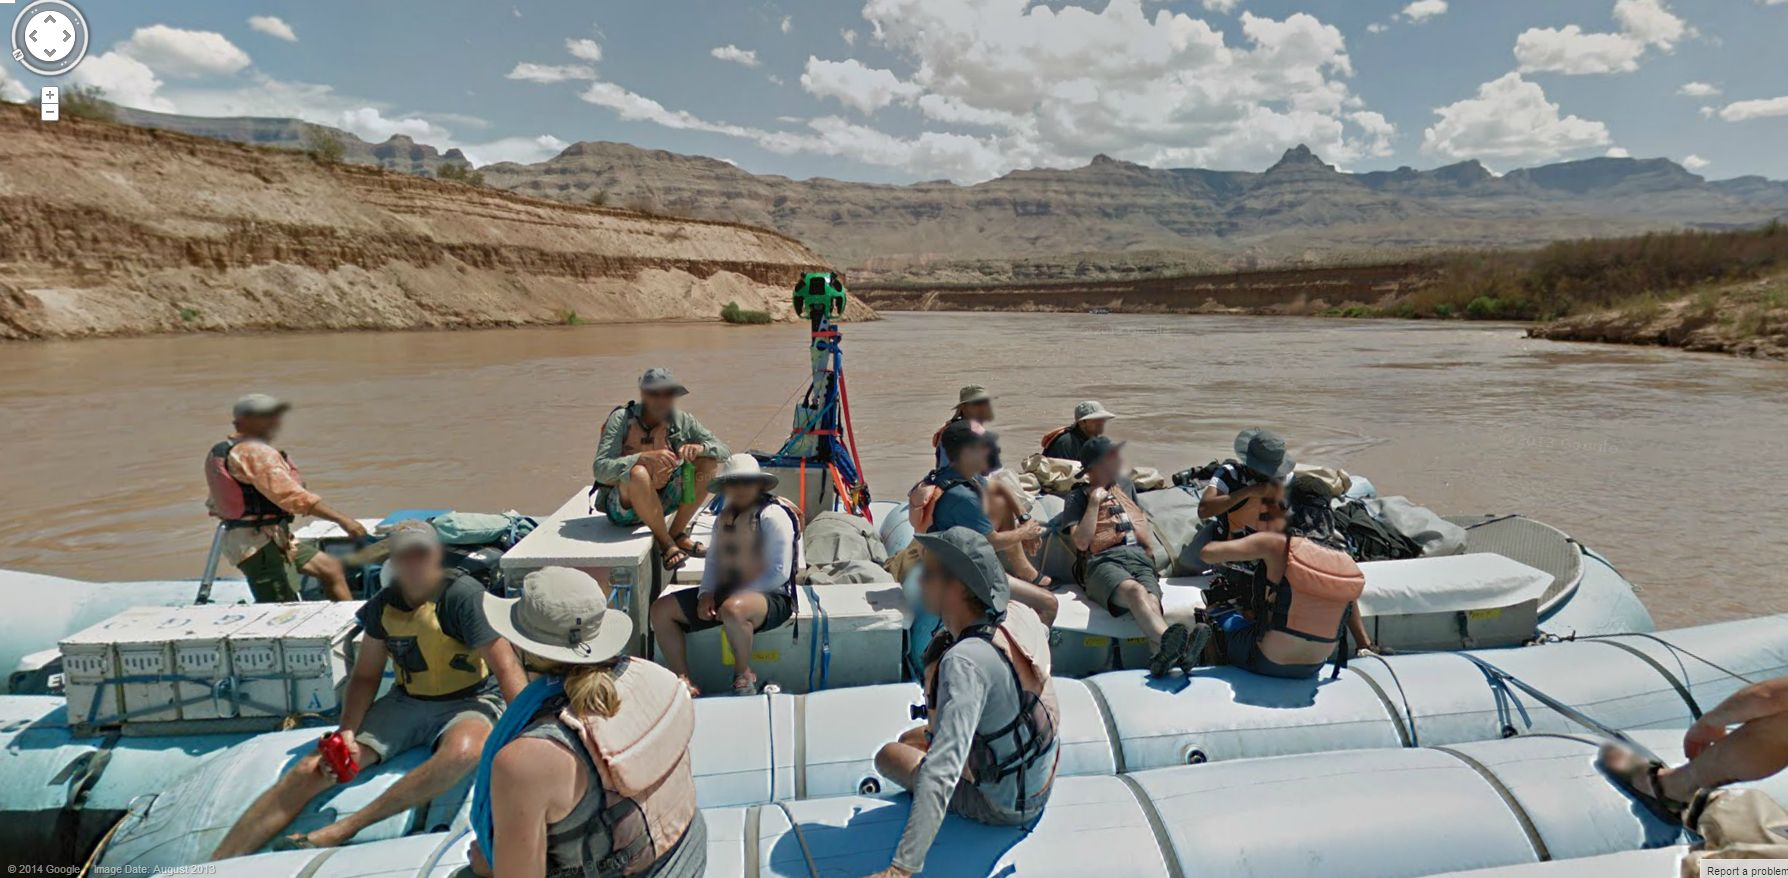 Great Shot of the Google Street View team on the Colorado River